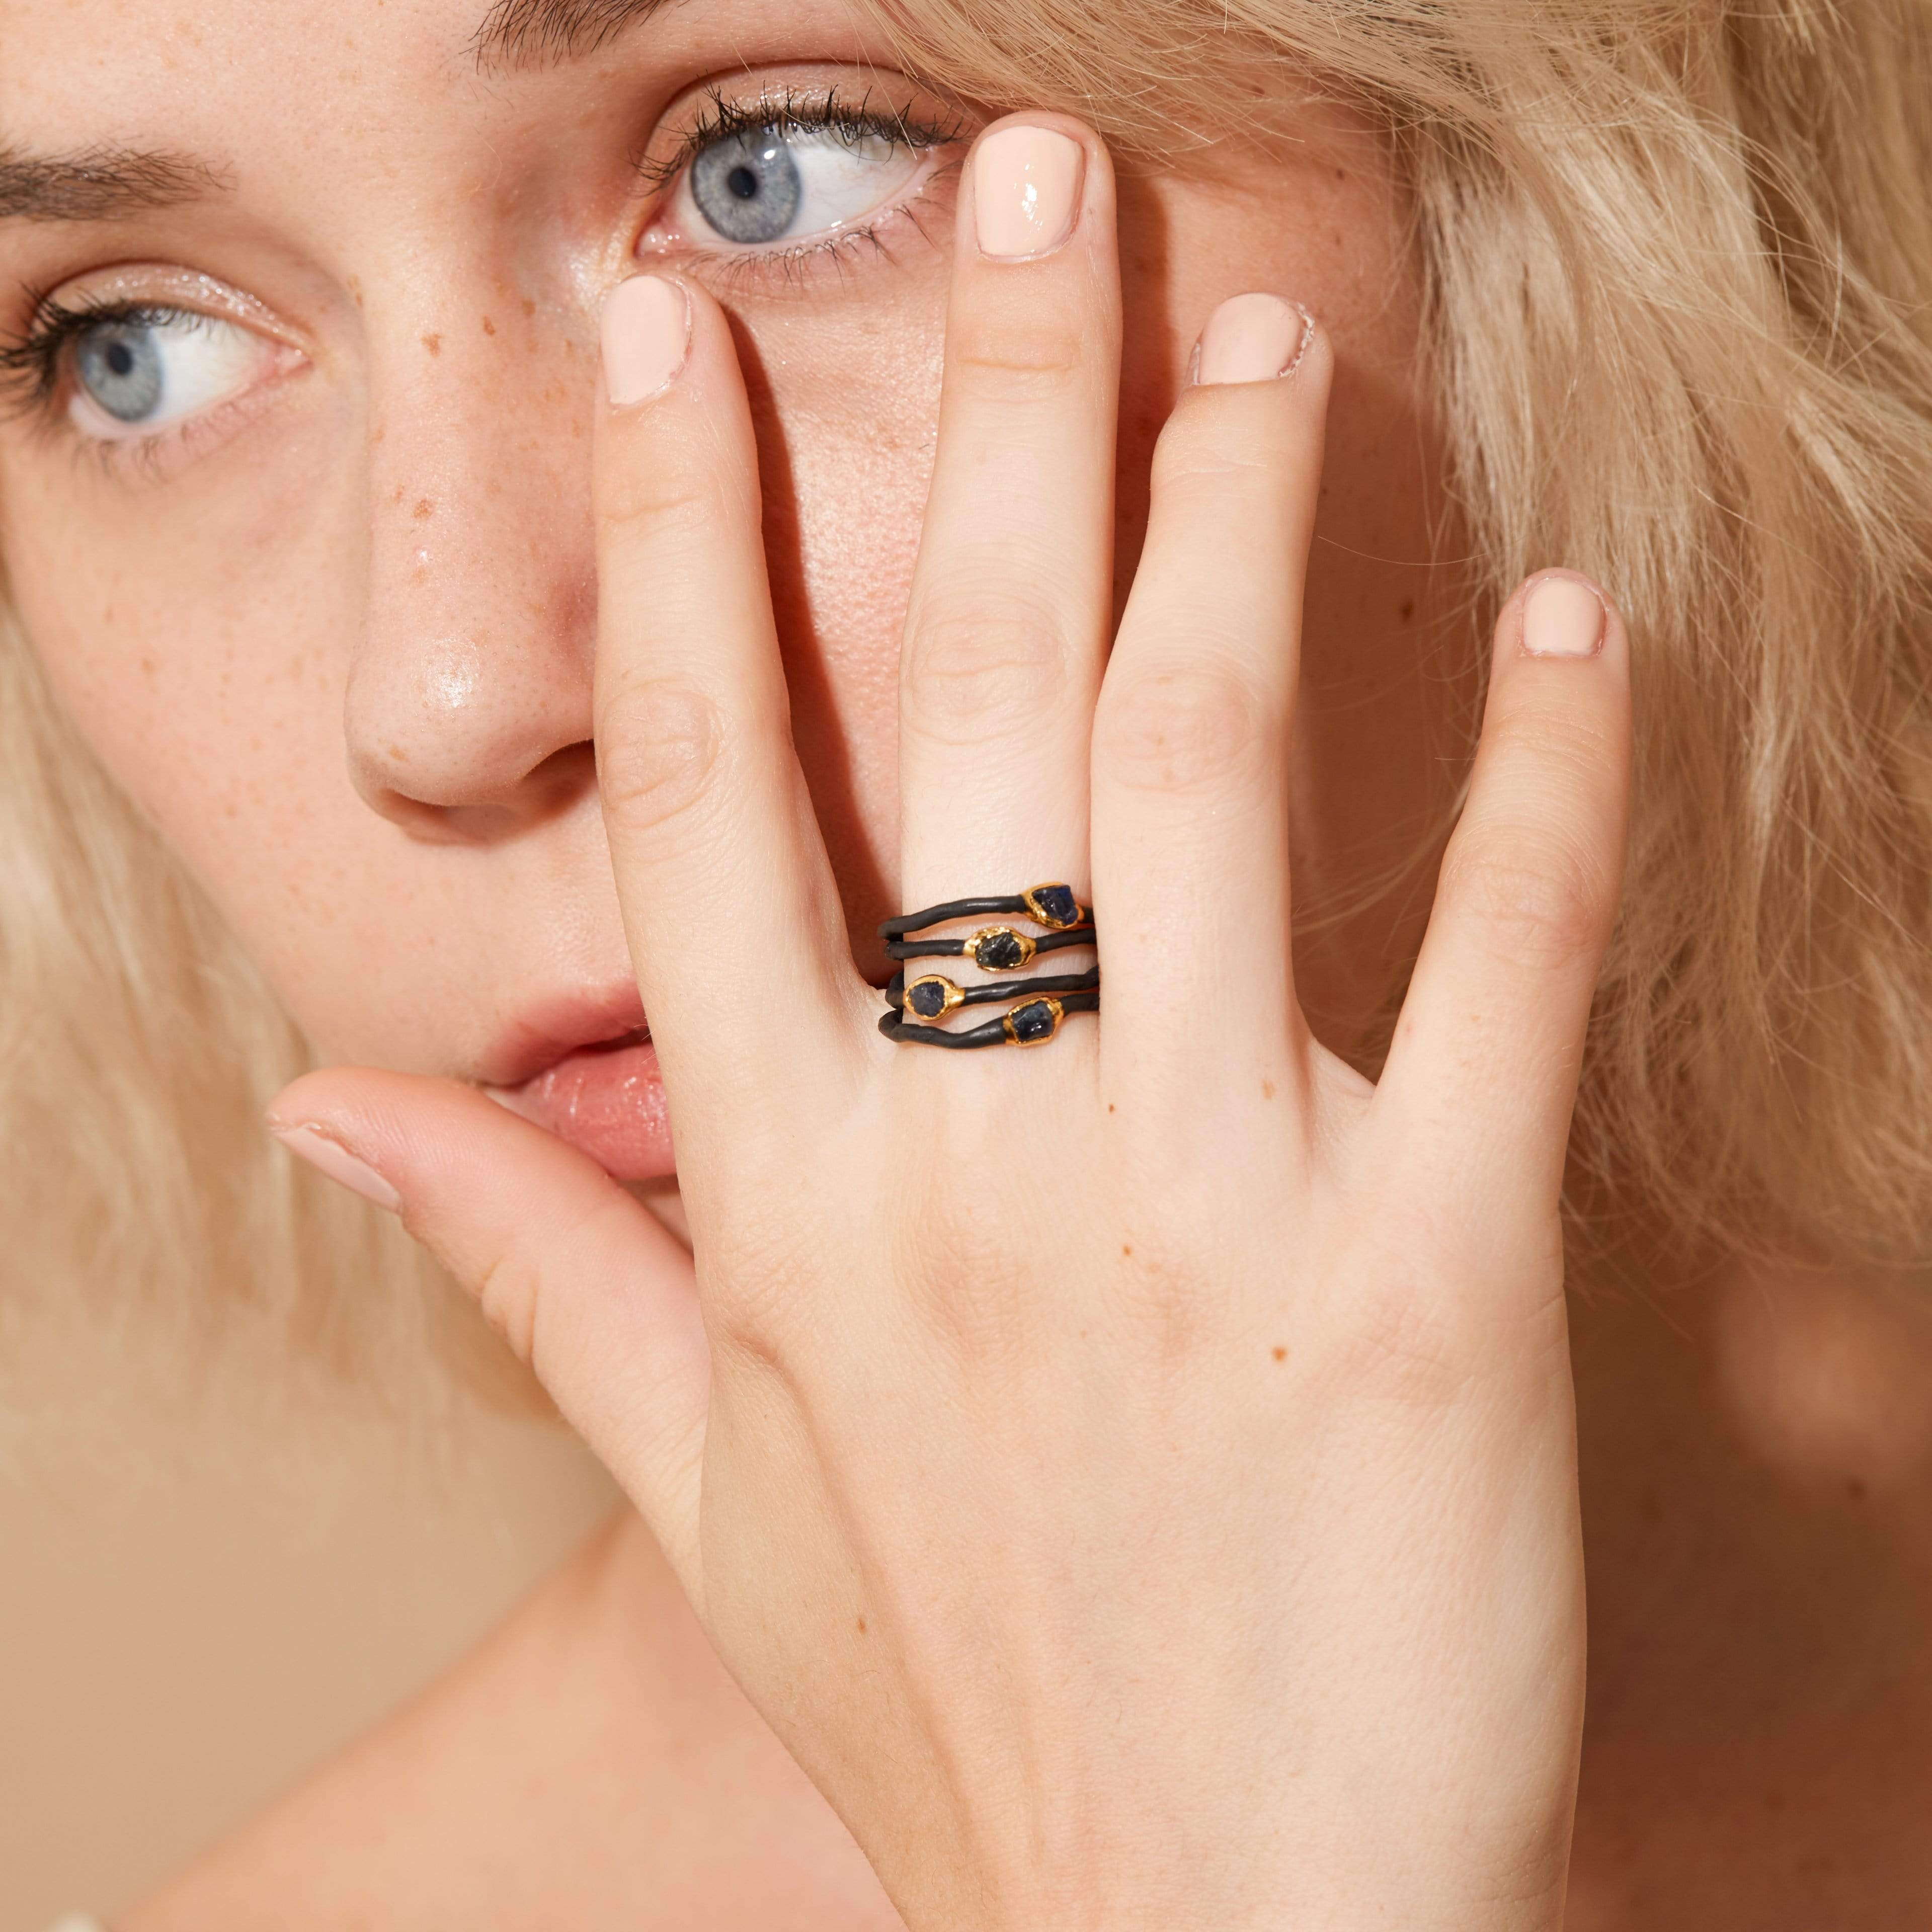 Honbria Blue Ring, Anthracite, black, Gold, Handmade, Sapphire, spo-disabled, StoneColor:DeepBlue, Style:Delicate, Type:BlackAnthracite, Type:StoneCandyDelicate Ring